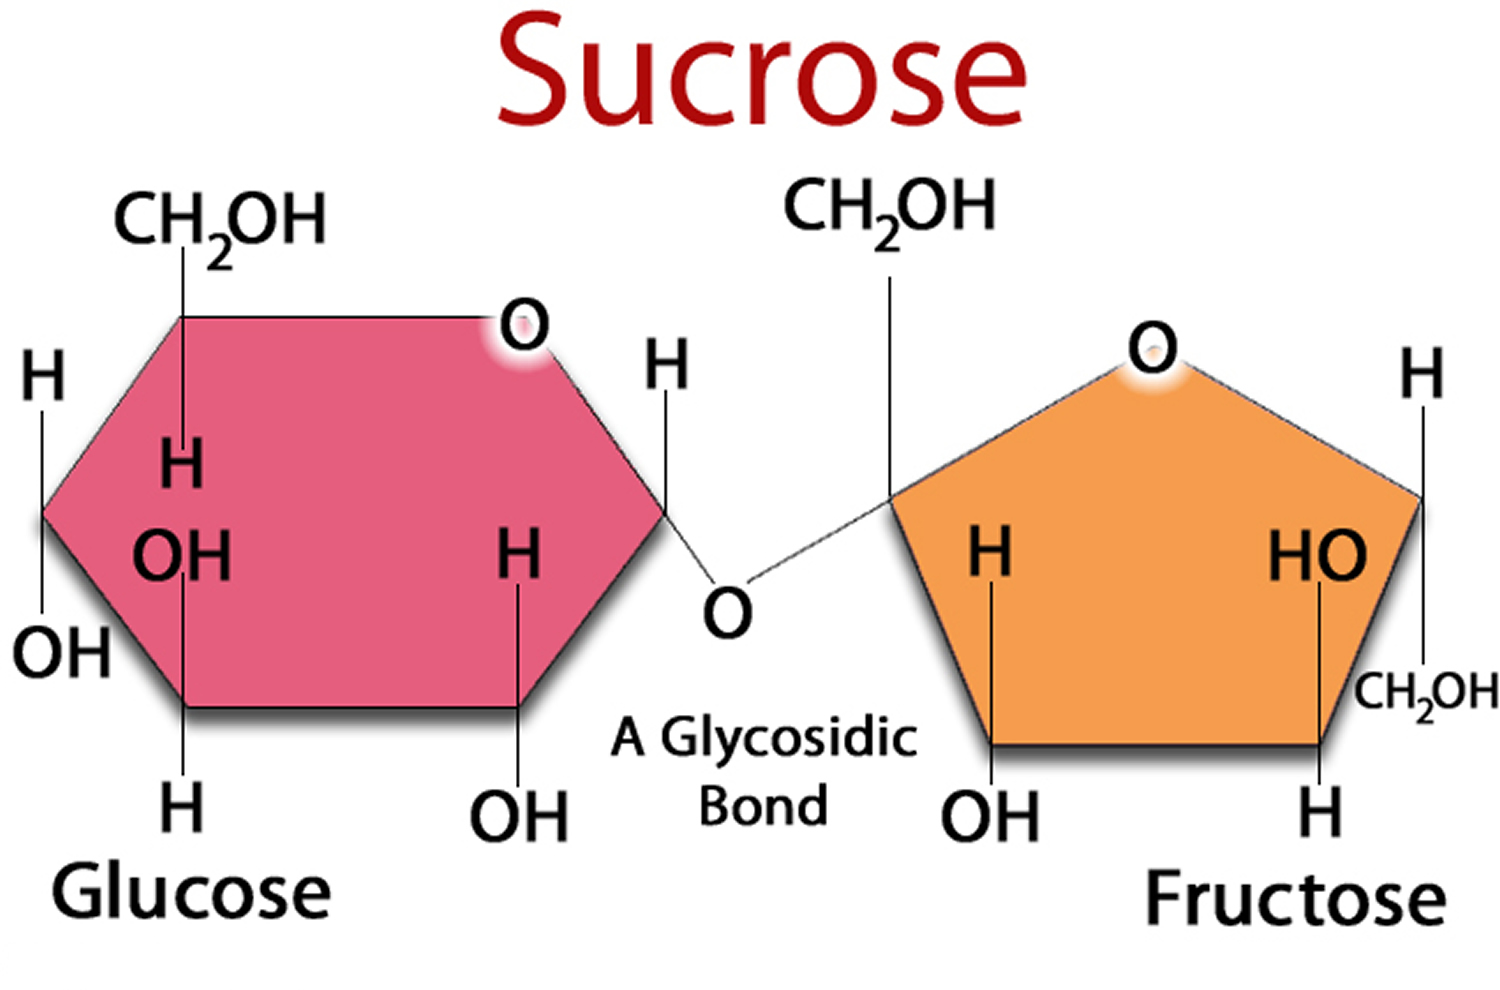 True facts about sugar obesity diabetes heart disease cancers sucrose table sugar is made of two simpler sugars called glucose and fructose gamestrikefo Image collections